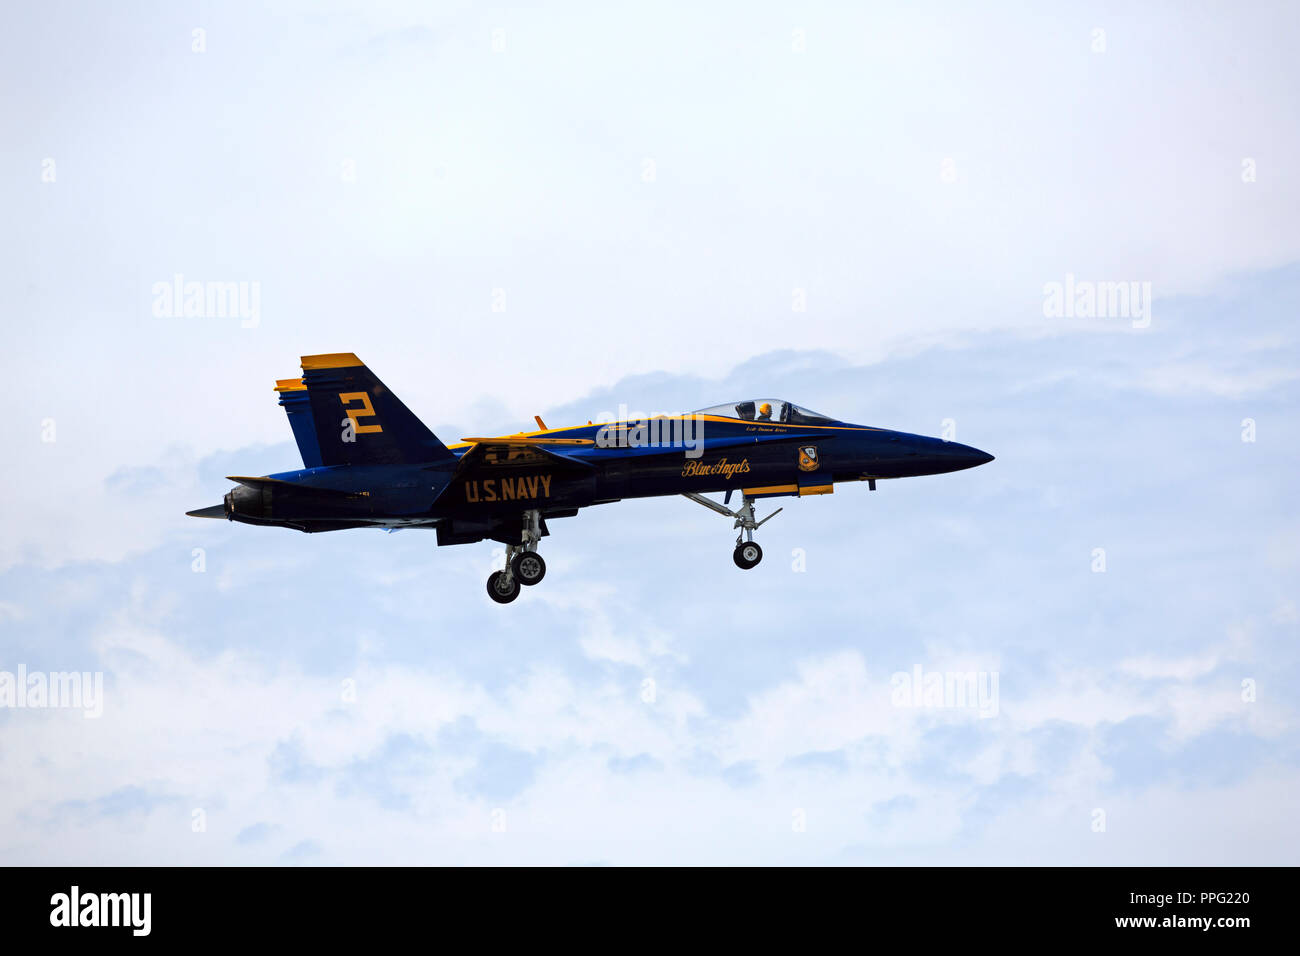 Blue Angel 2 prepares to land at the Cleveland Air Show in 2018 - Stock Image